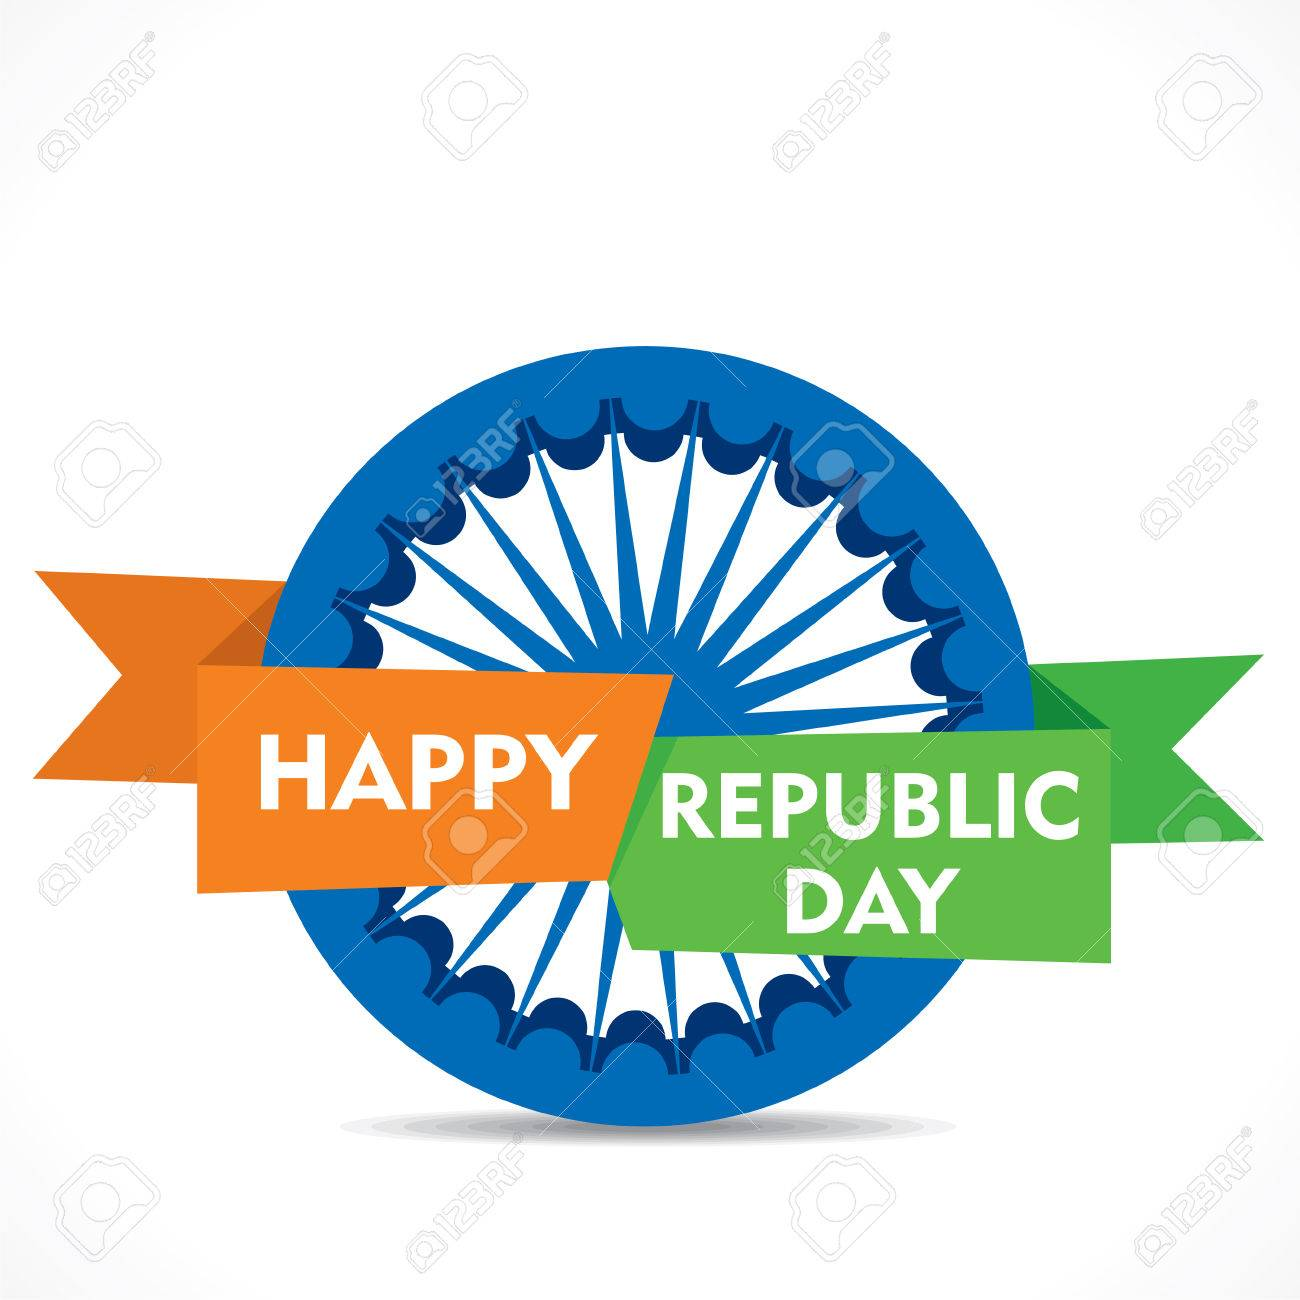 Happy republic day greeting card design royalty free cliparts happy republic day greeting card design stock vector 50904119 m4hsunfo